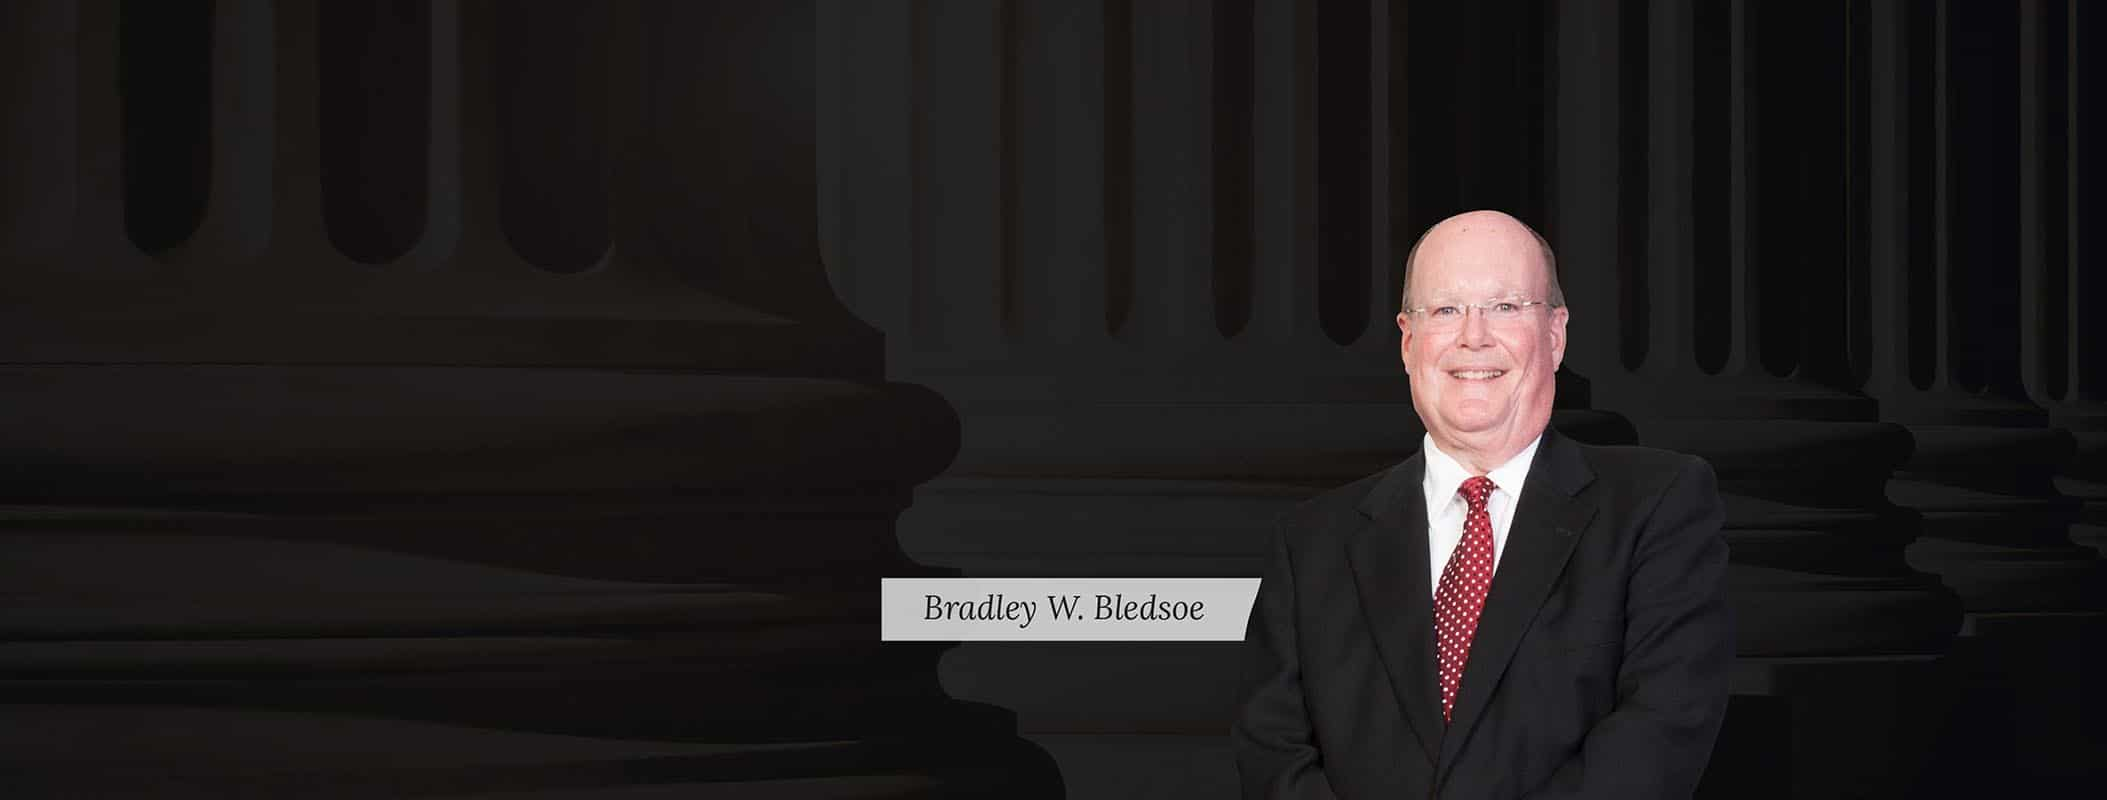 Brad Bledsoe - Trammell & Mills Law Firm in Anderson, SC